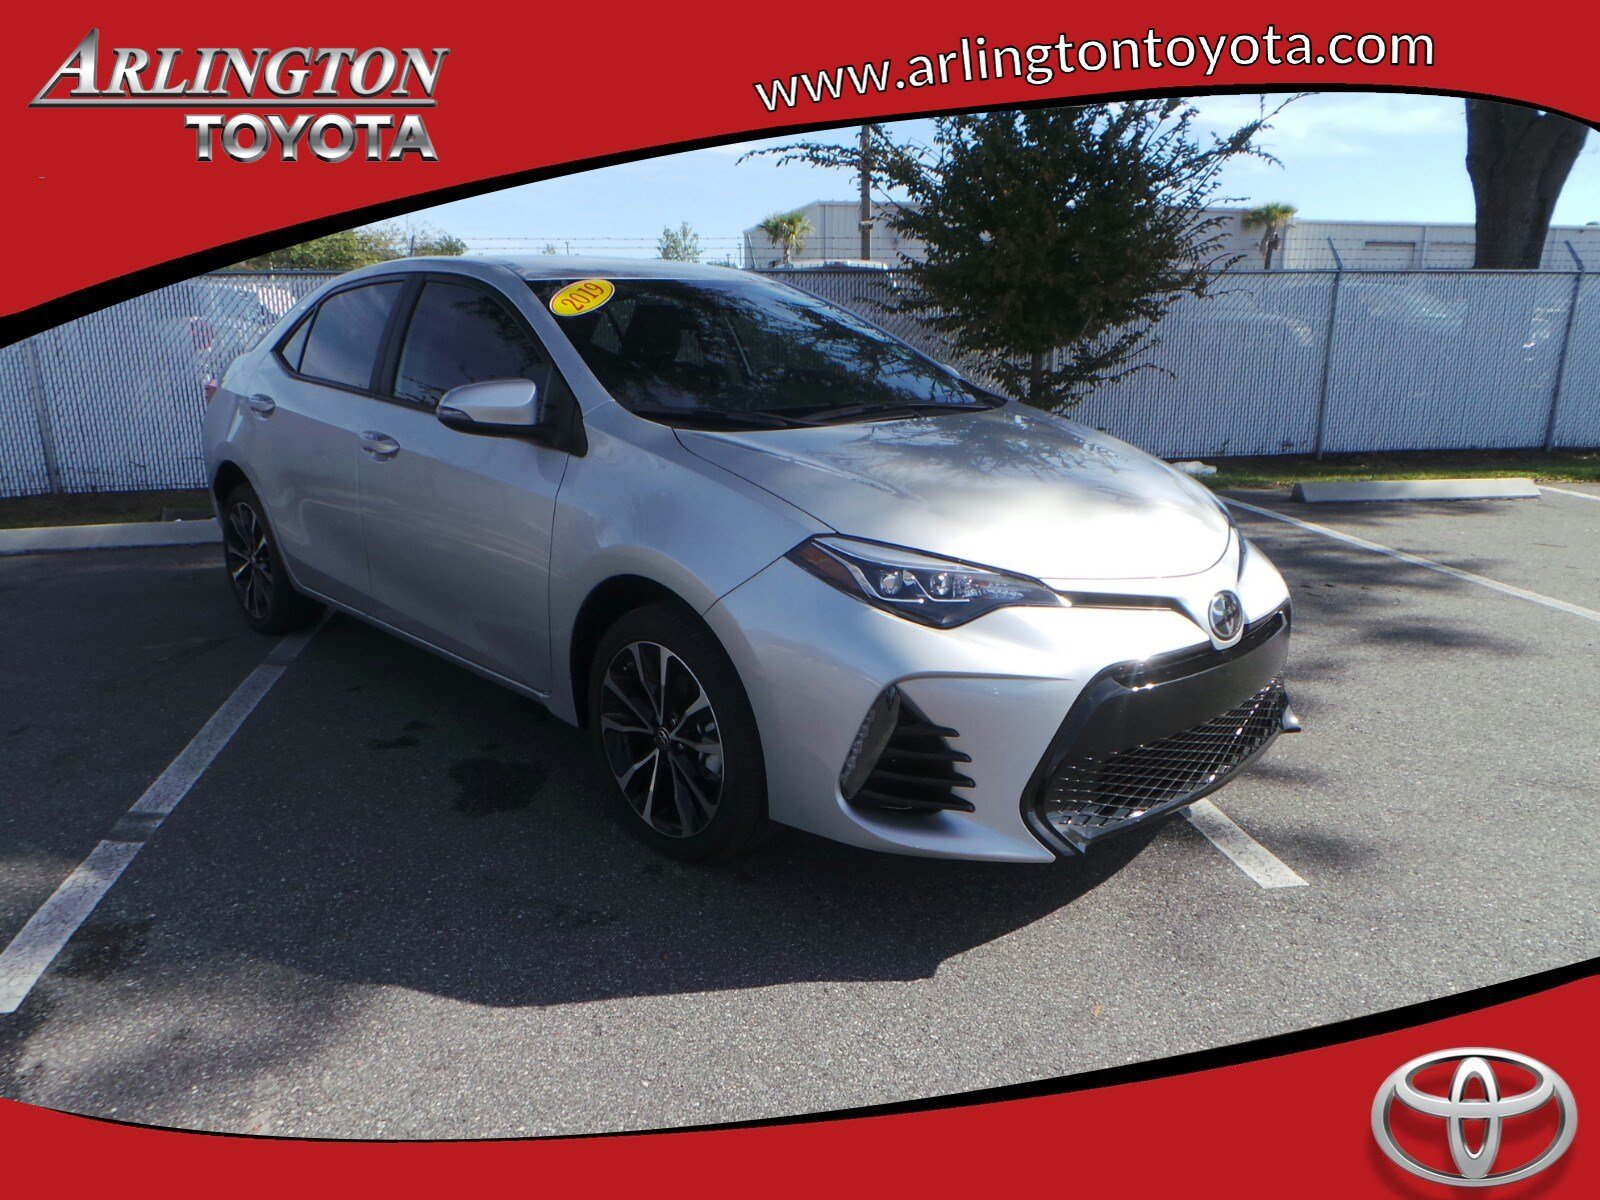 Used toyota Corolla for Sale Luxury Certified Pre Owned 2019 toyota Corolla S 4dr Car In Jacksonville